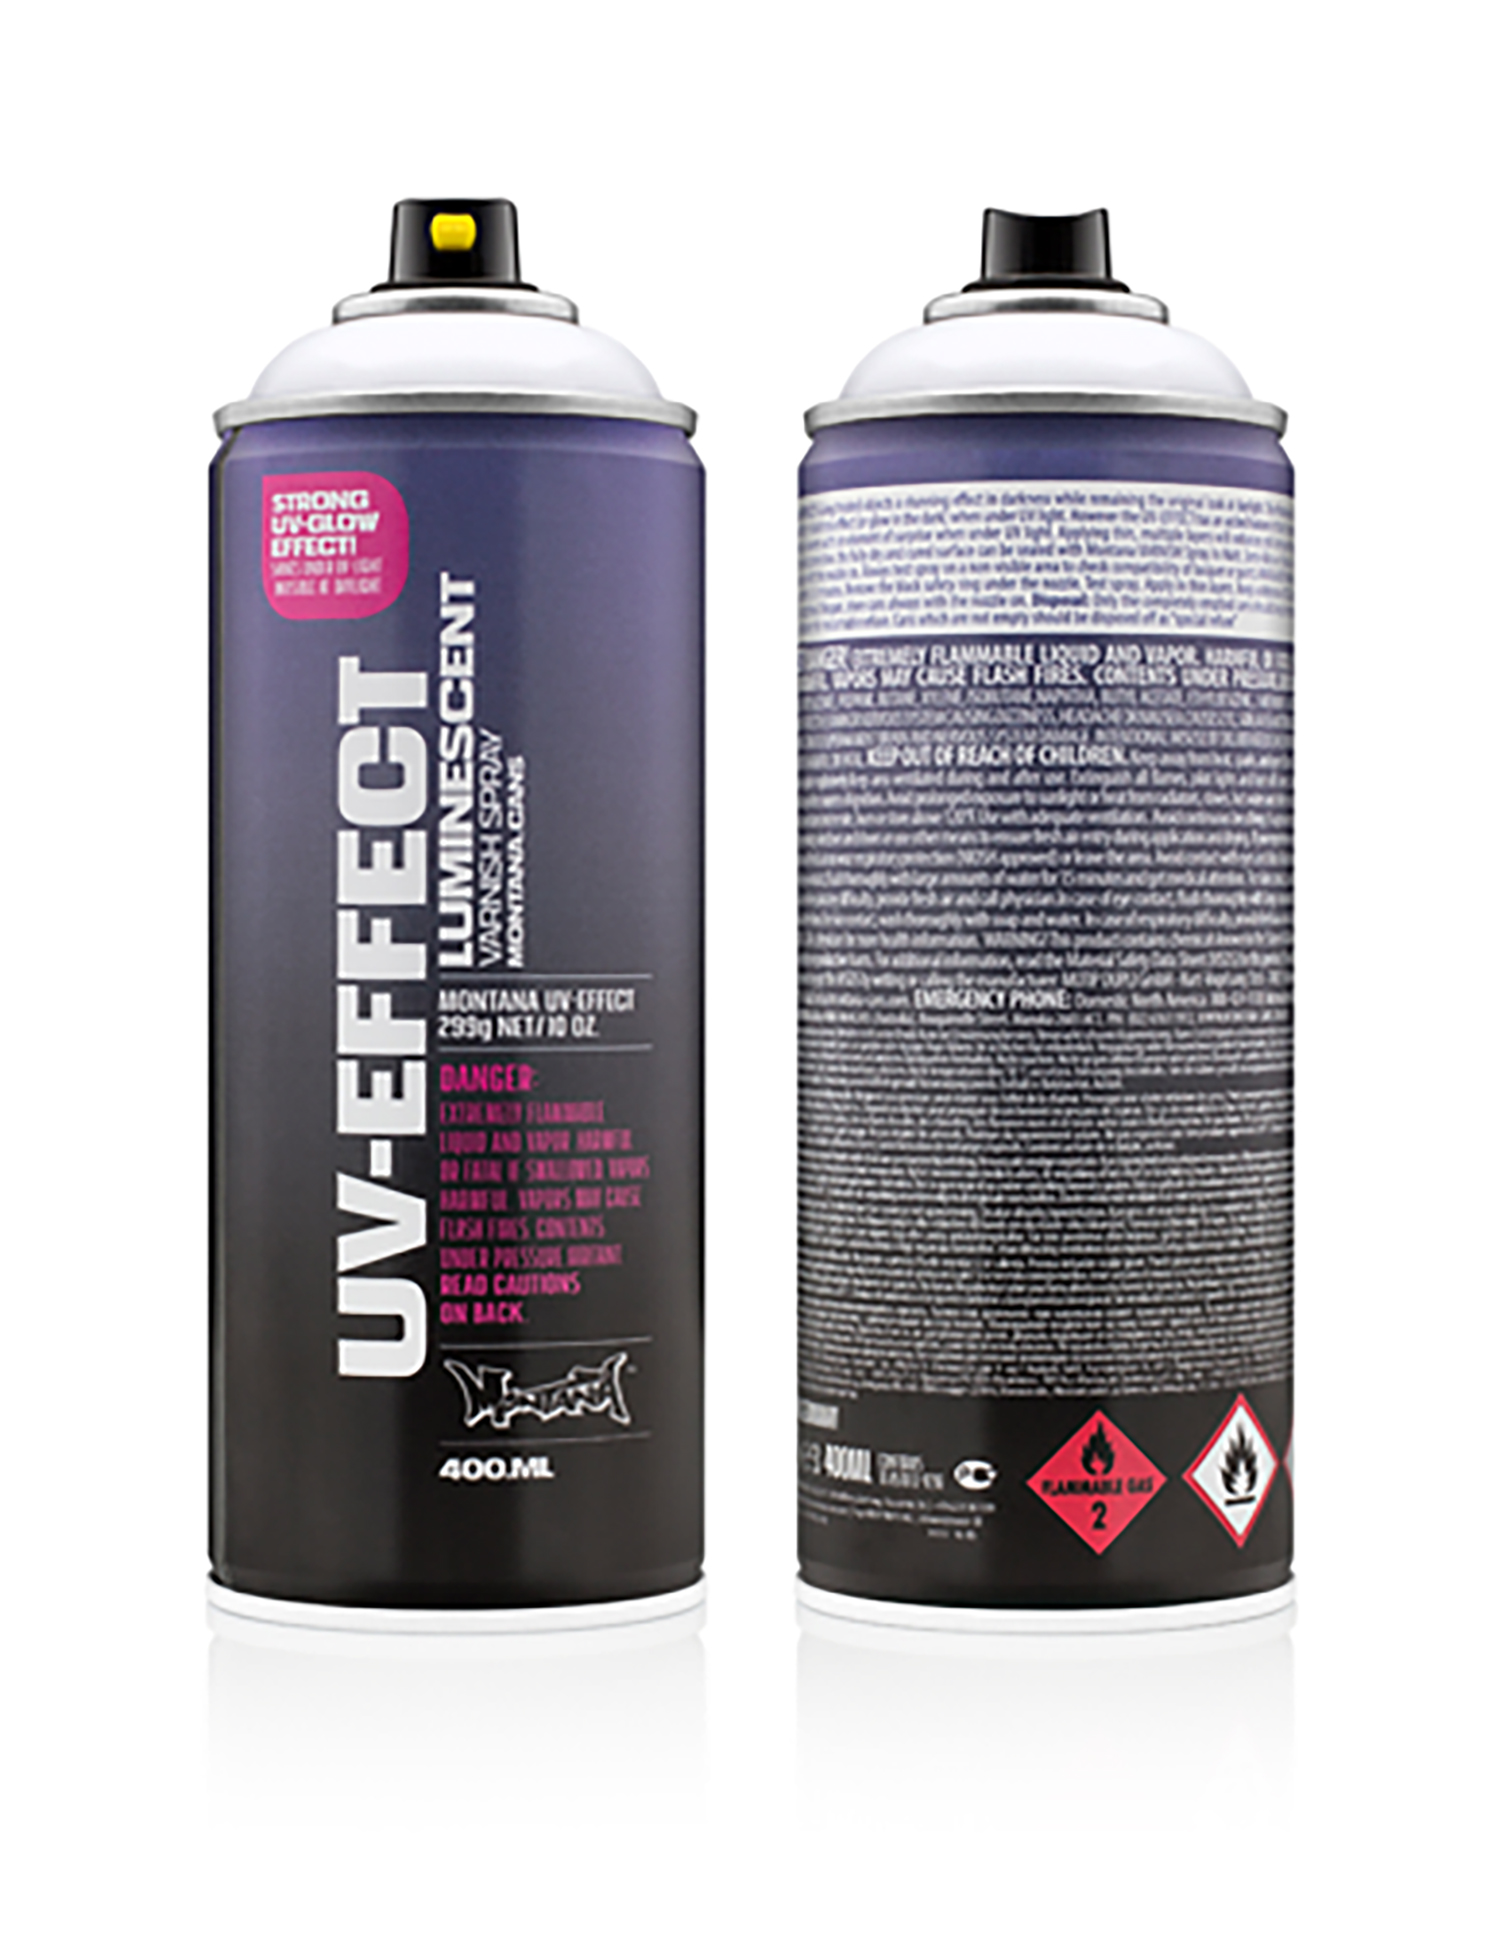 MONTANA-EFFECT-UV-SPRAY-400ML_TRANSPARENT